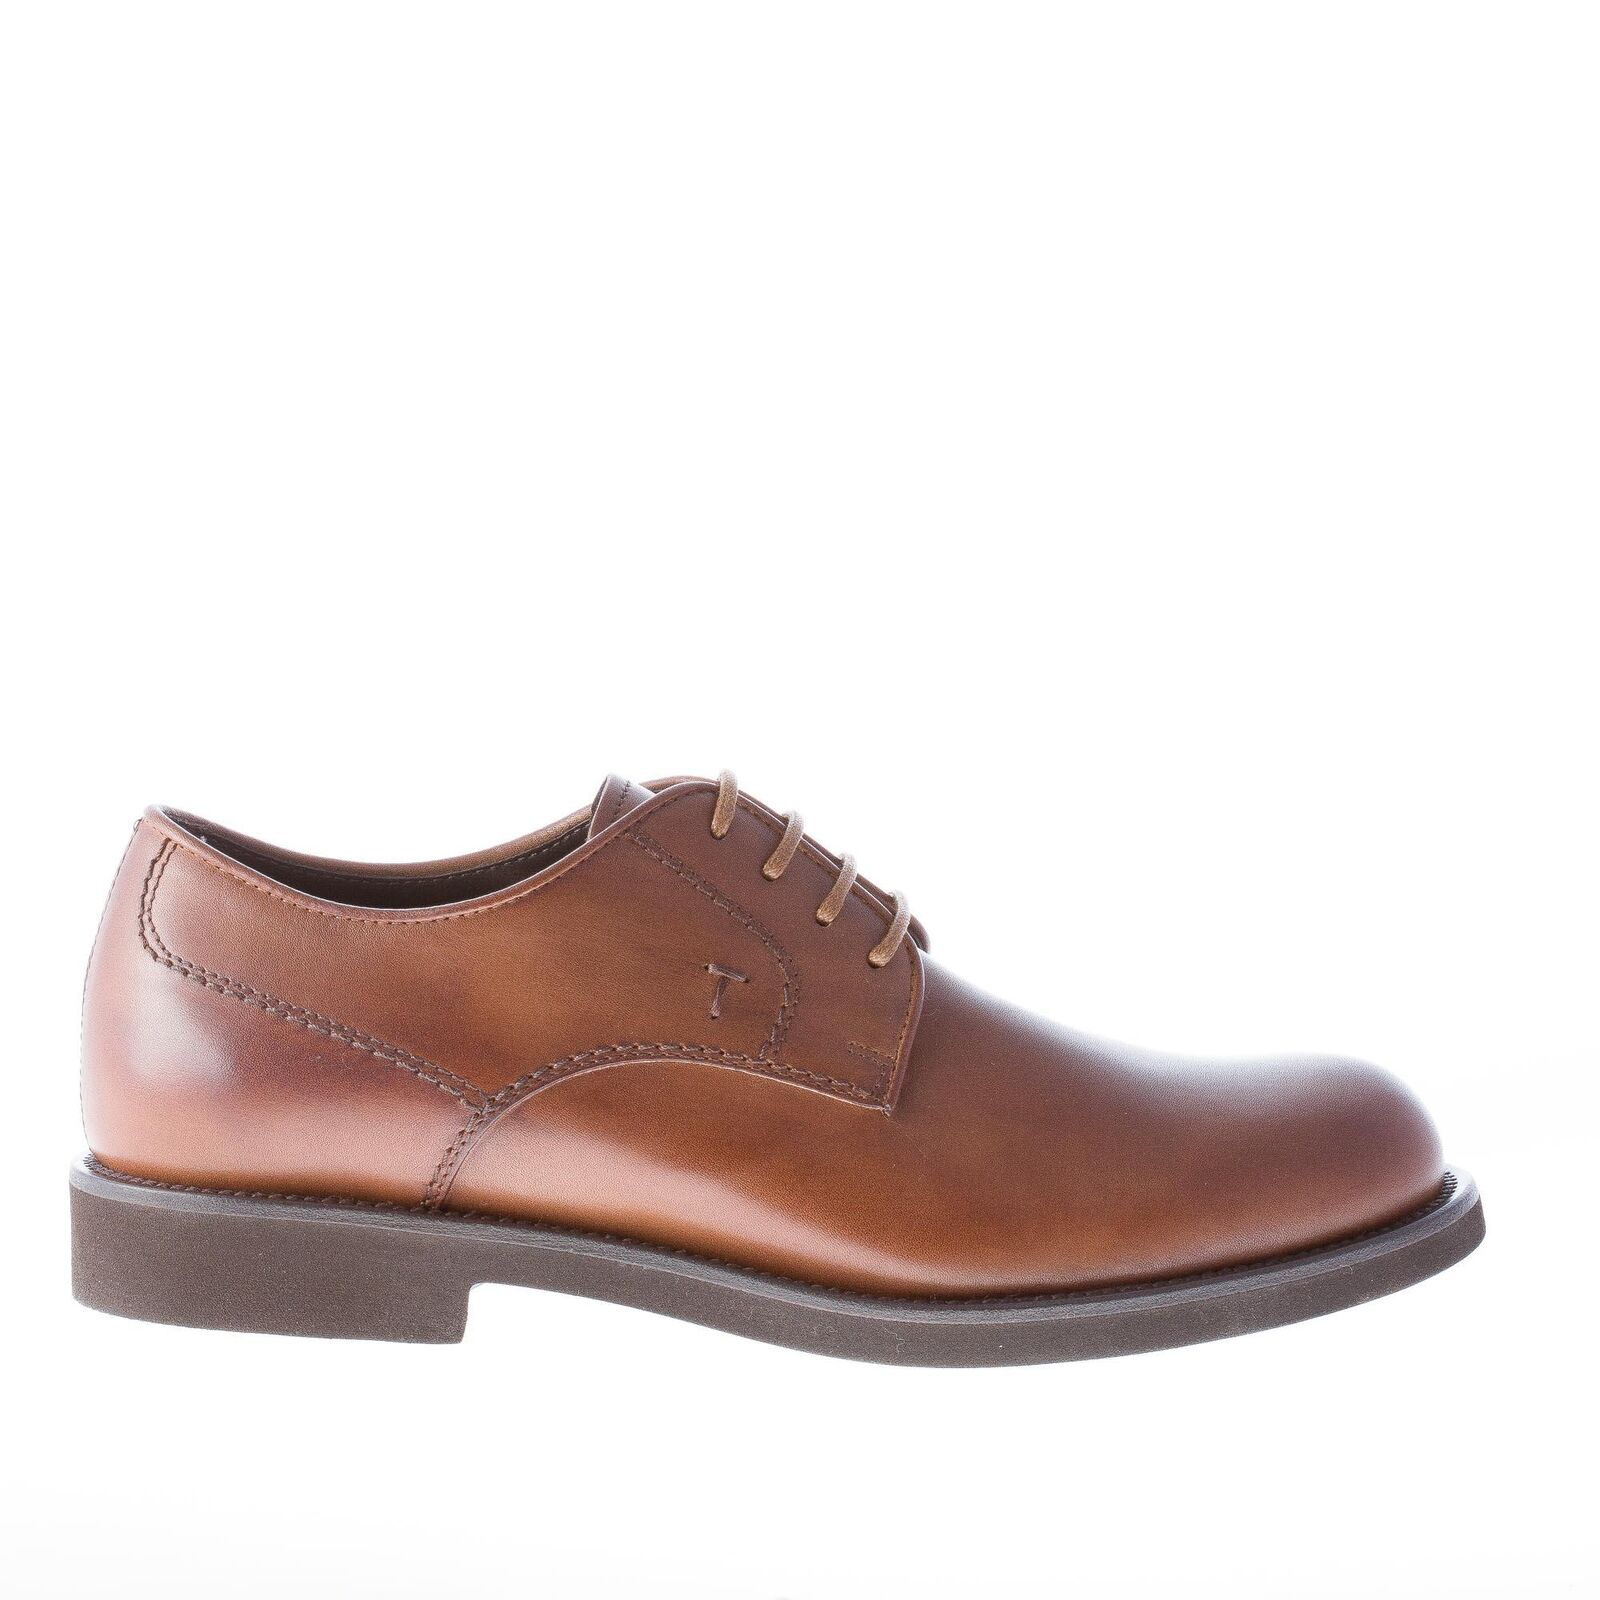 TOD'S scarpe uomo Uomo shoes derby in pelle cammello scuro con punta tonda